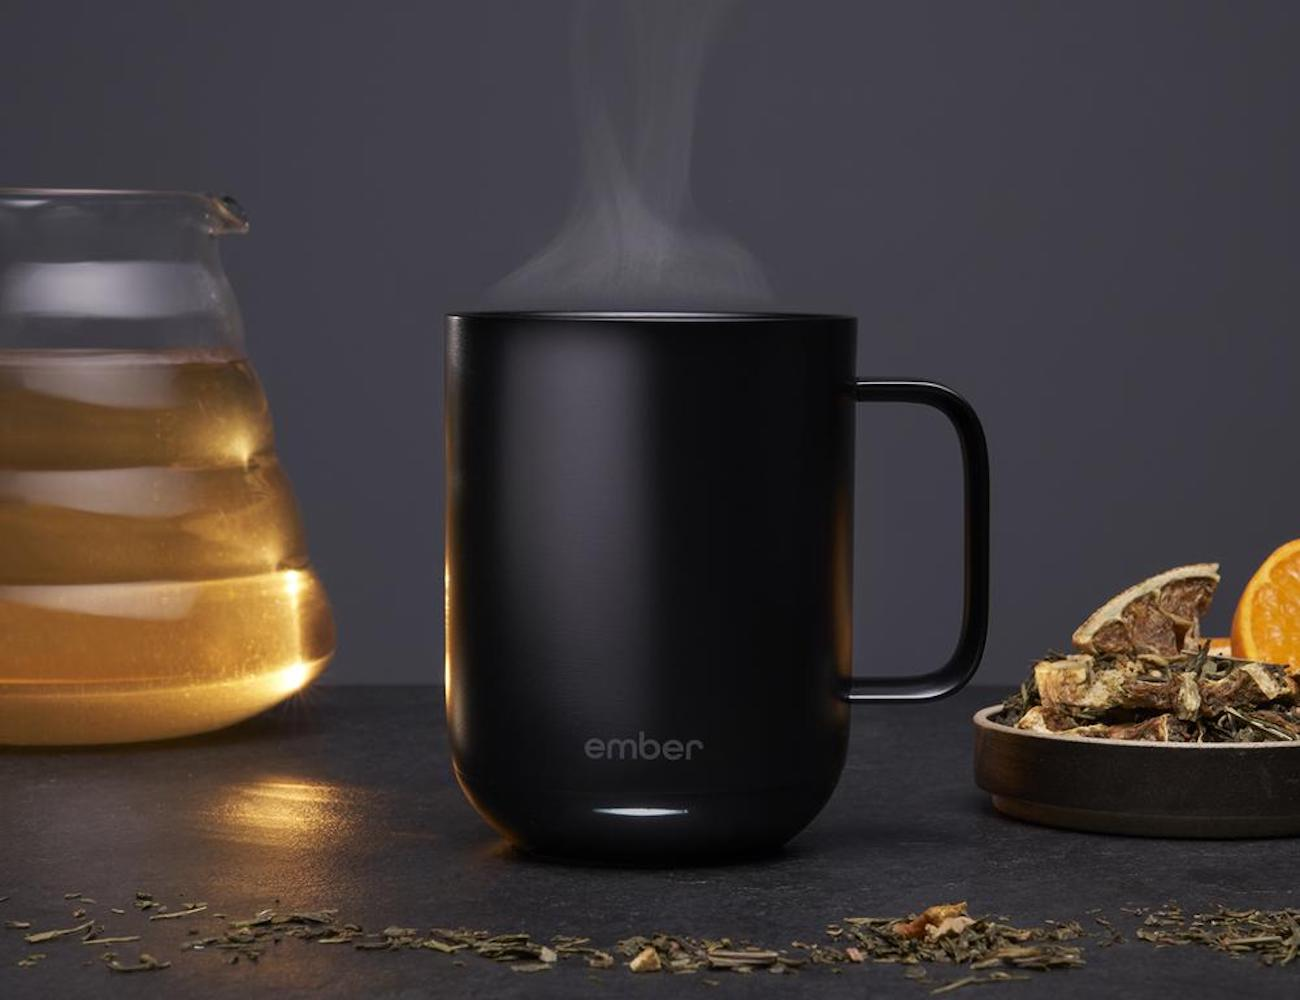 Ember Ceramic Smart Coffee Mug combines beauty and brains